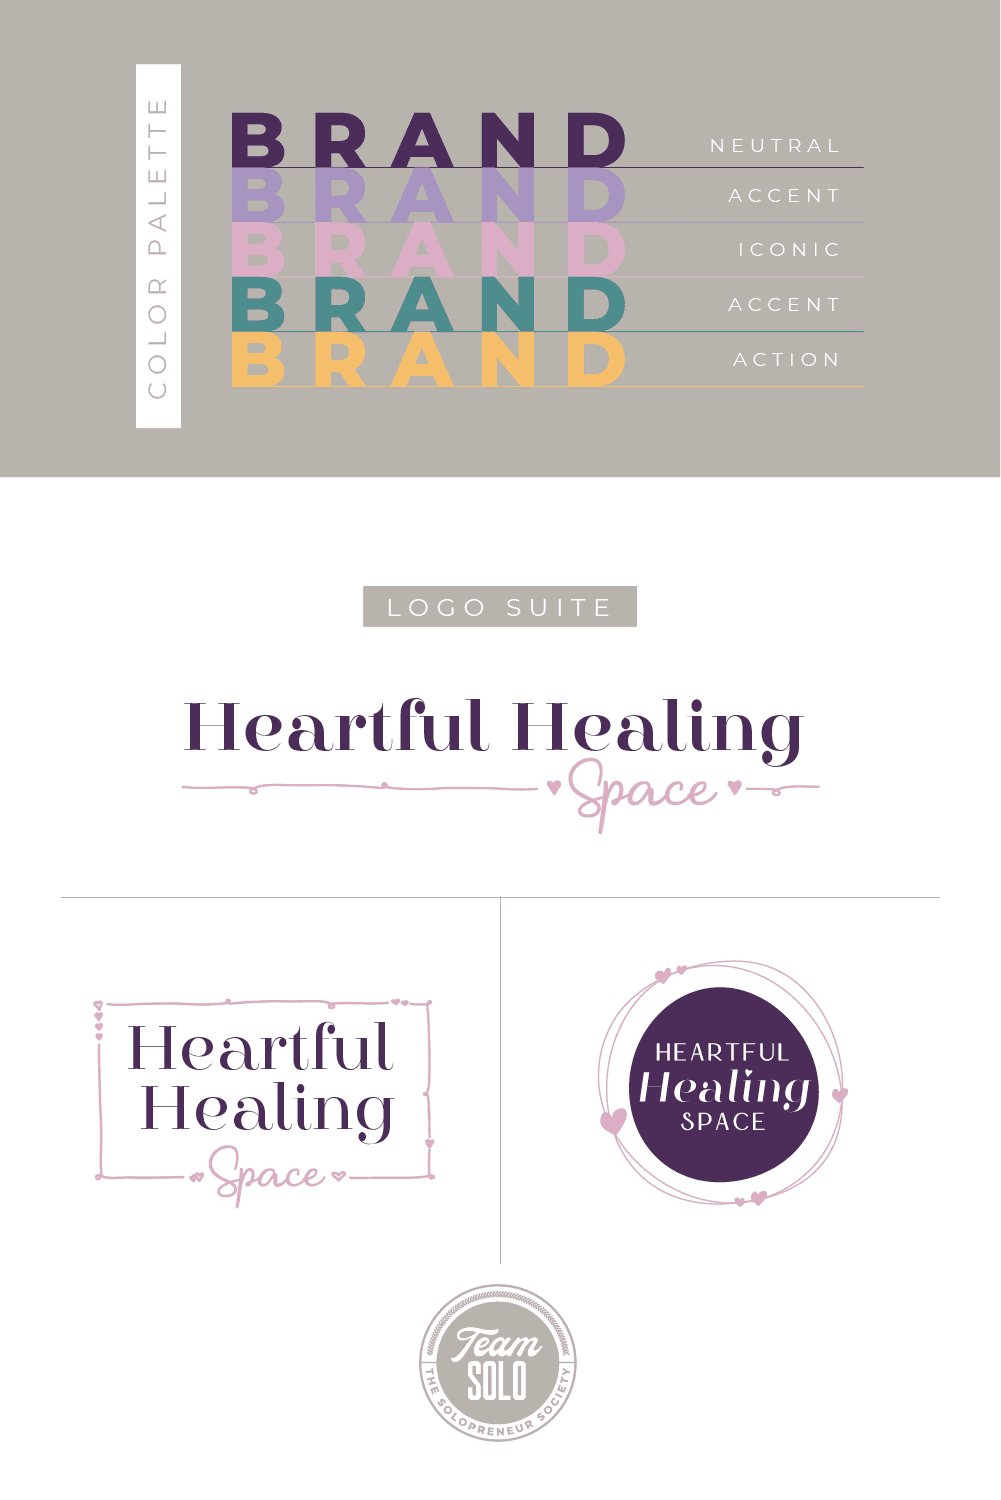 Heartful Healing Space Brand Identity Design